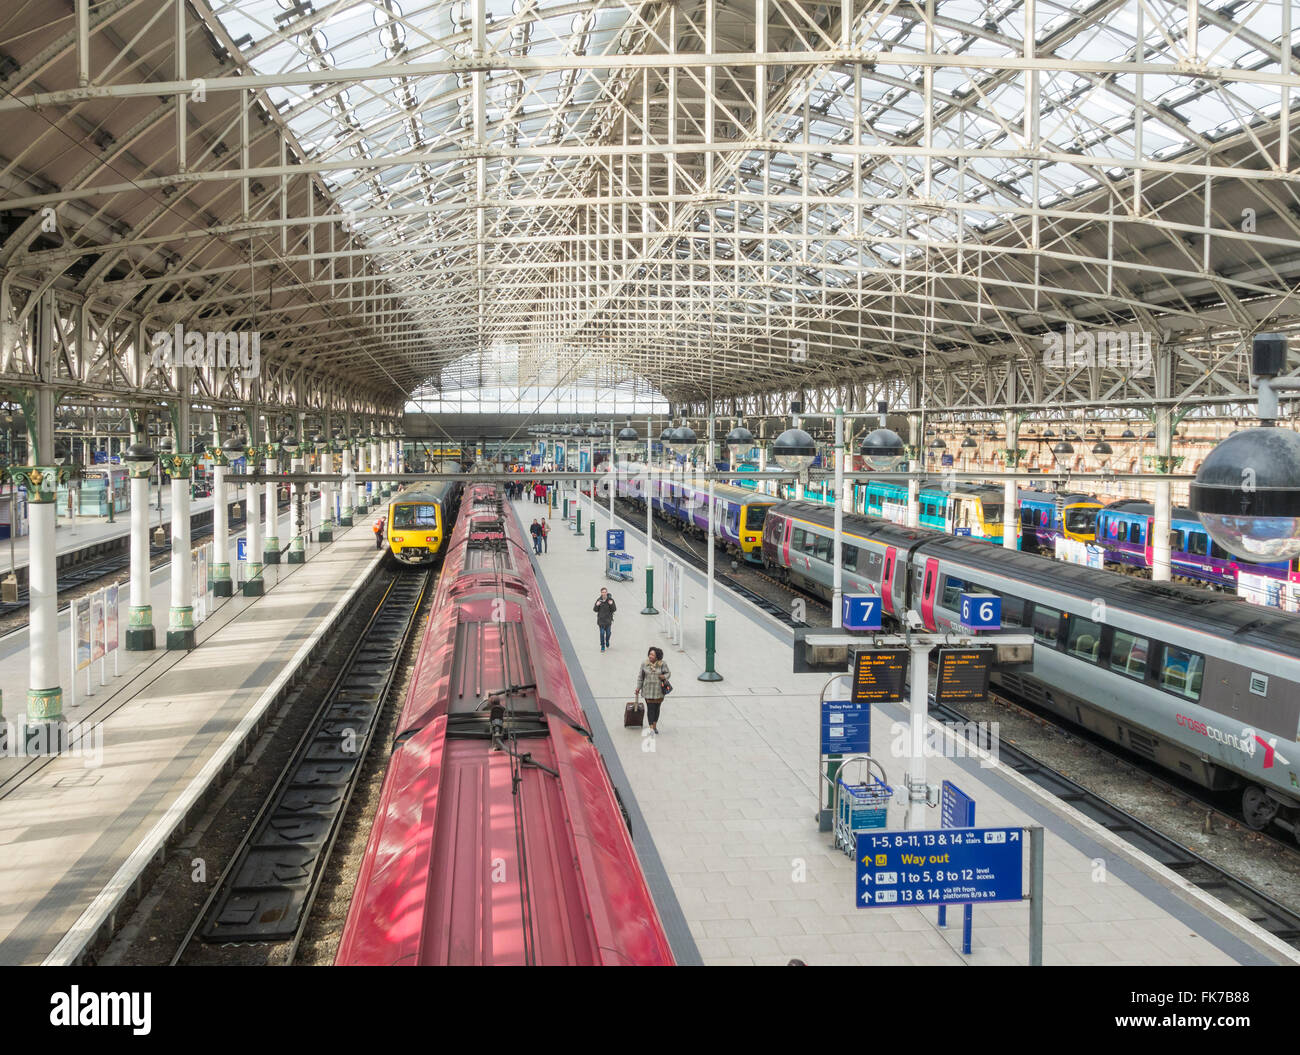 Manchester Piccadilly train station, Manchester, England. UK - Stock Image